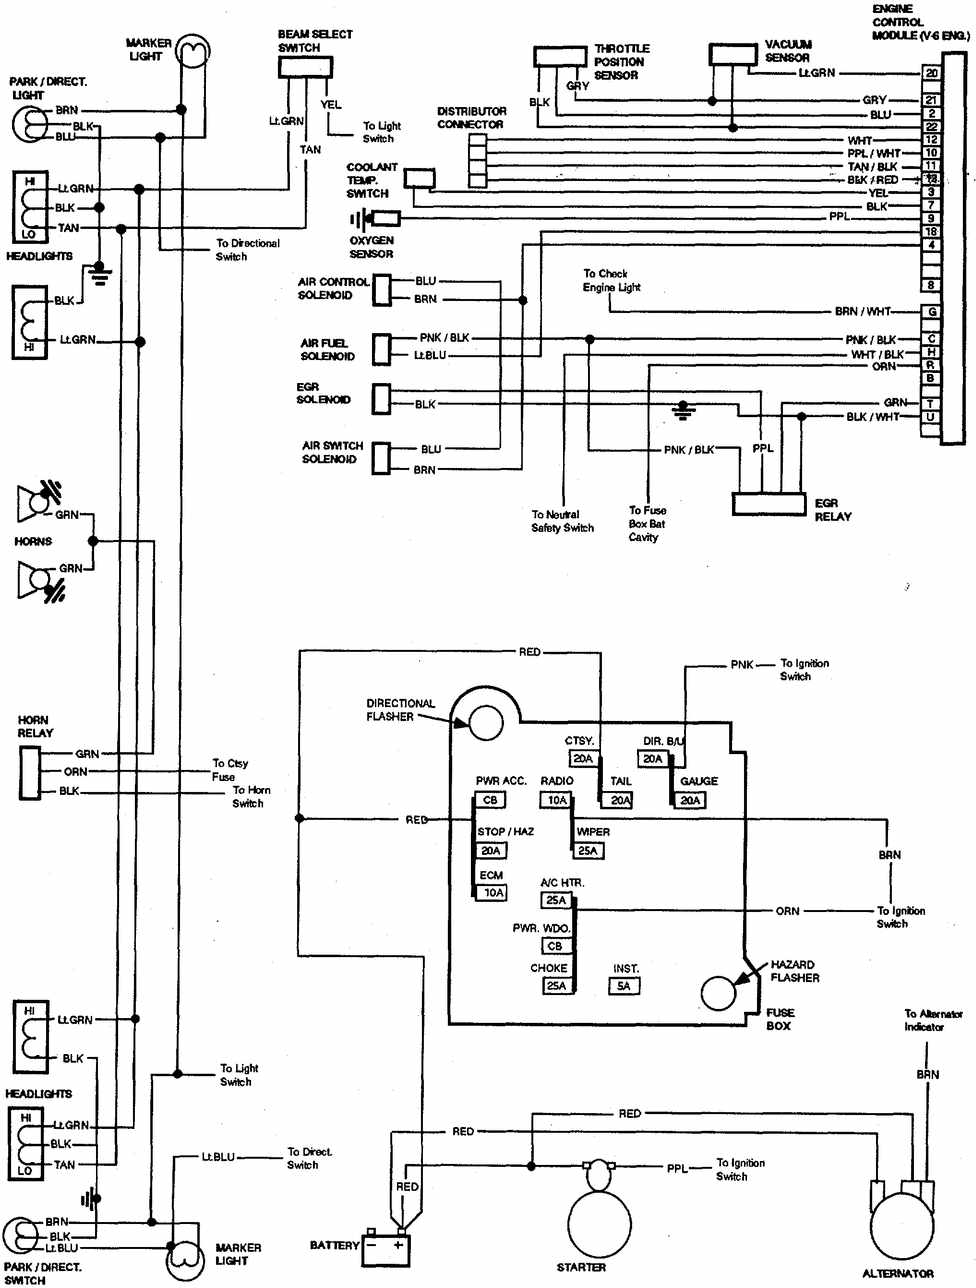 1995 dakota wiring schematics